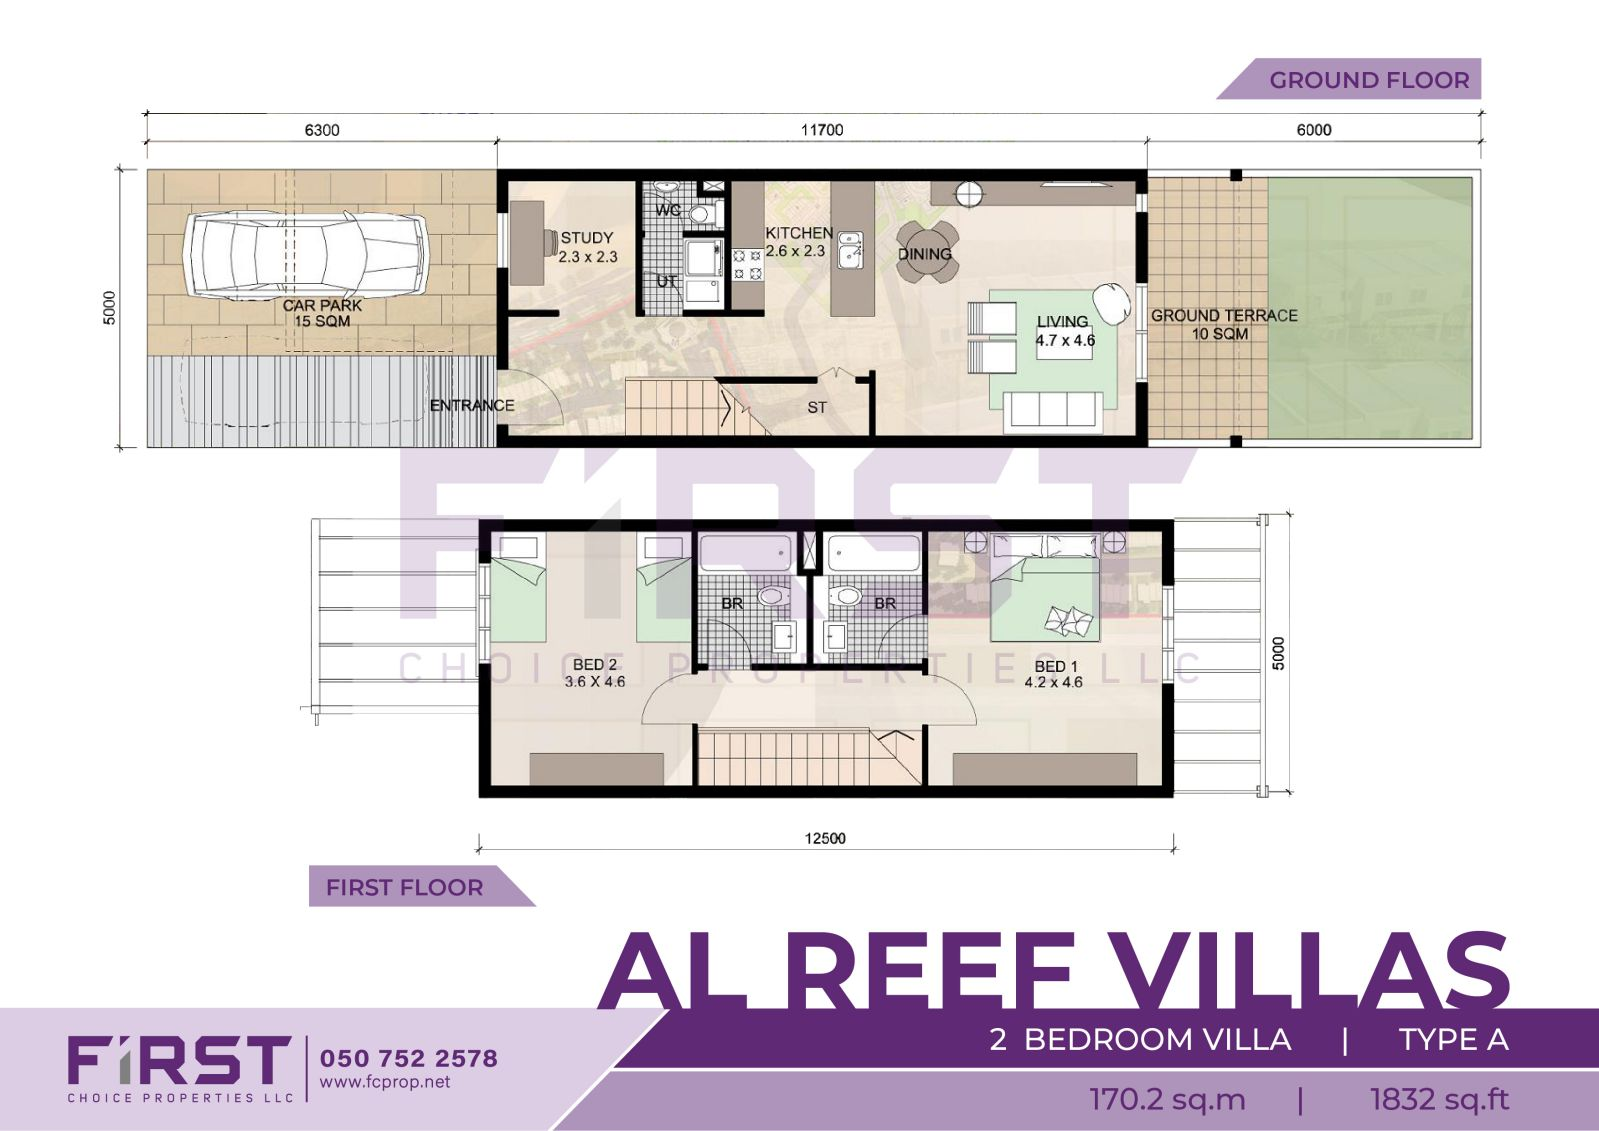 Al Reef Abu Dhabi Al Reef Villas 2 Bedroom Villa Type A 170.2 sq.m 1832 sq.ft.jpg